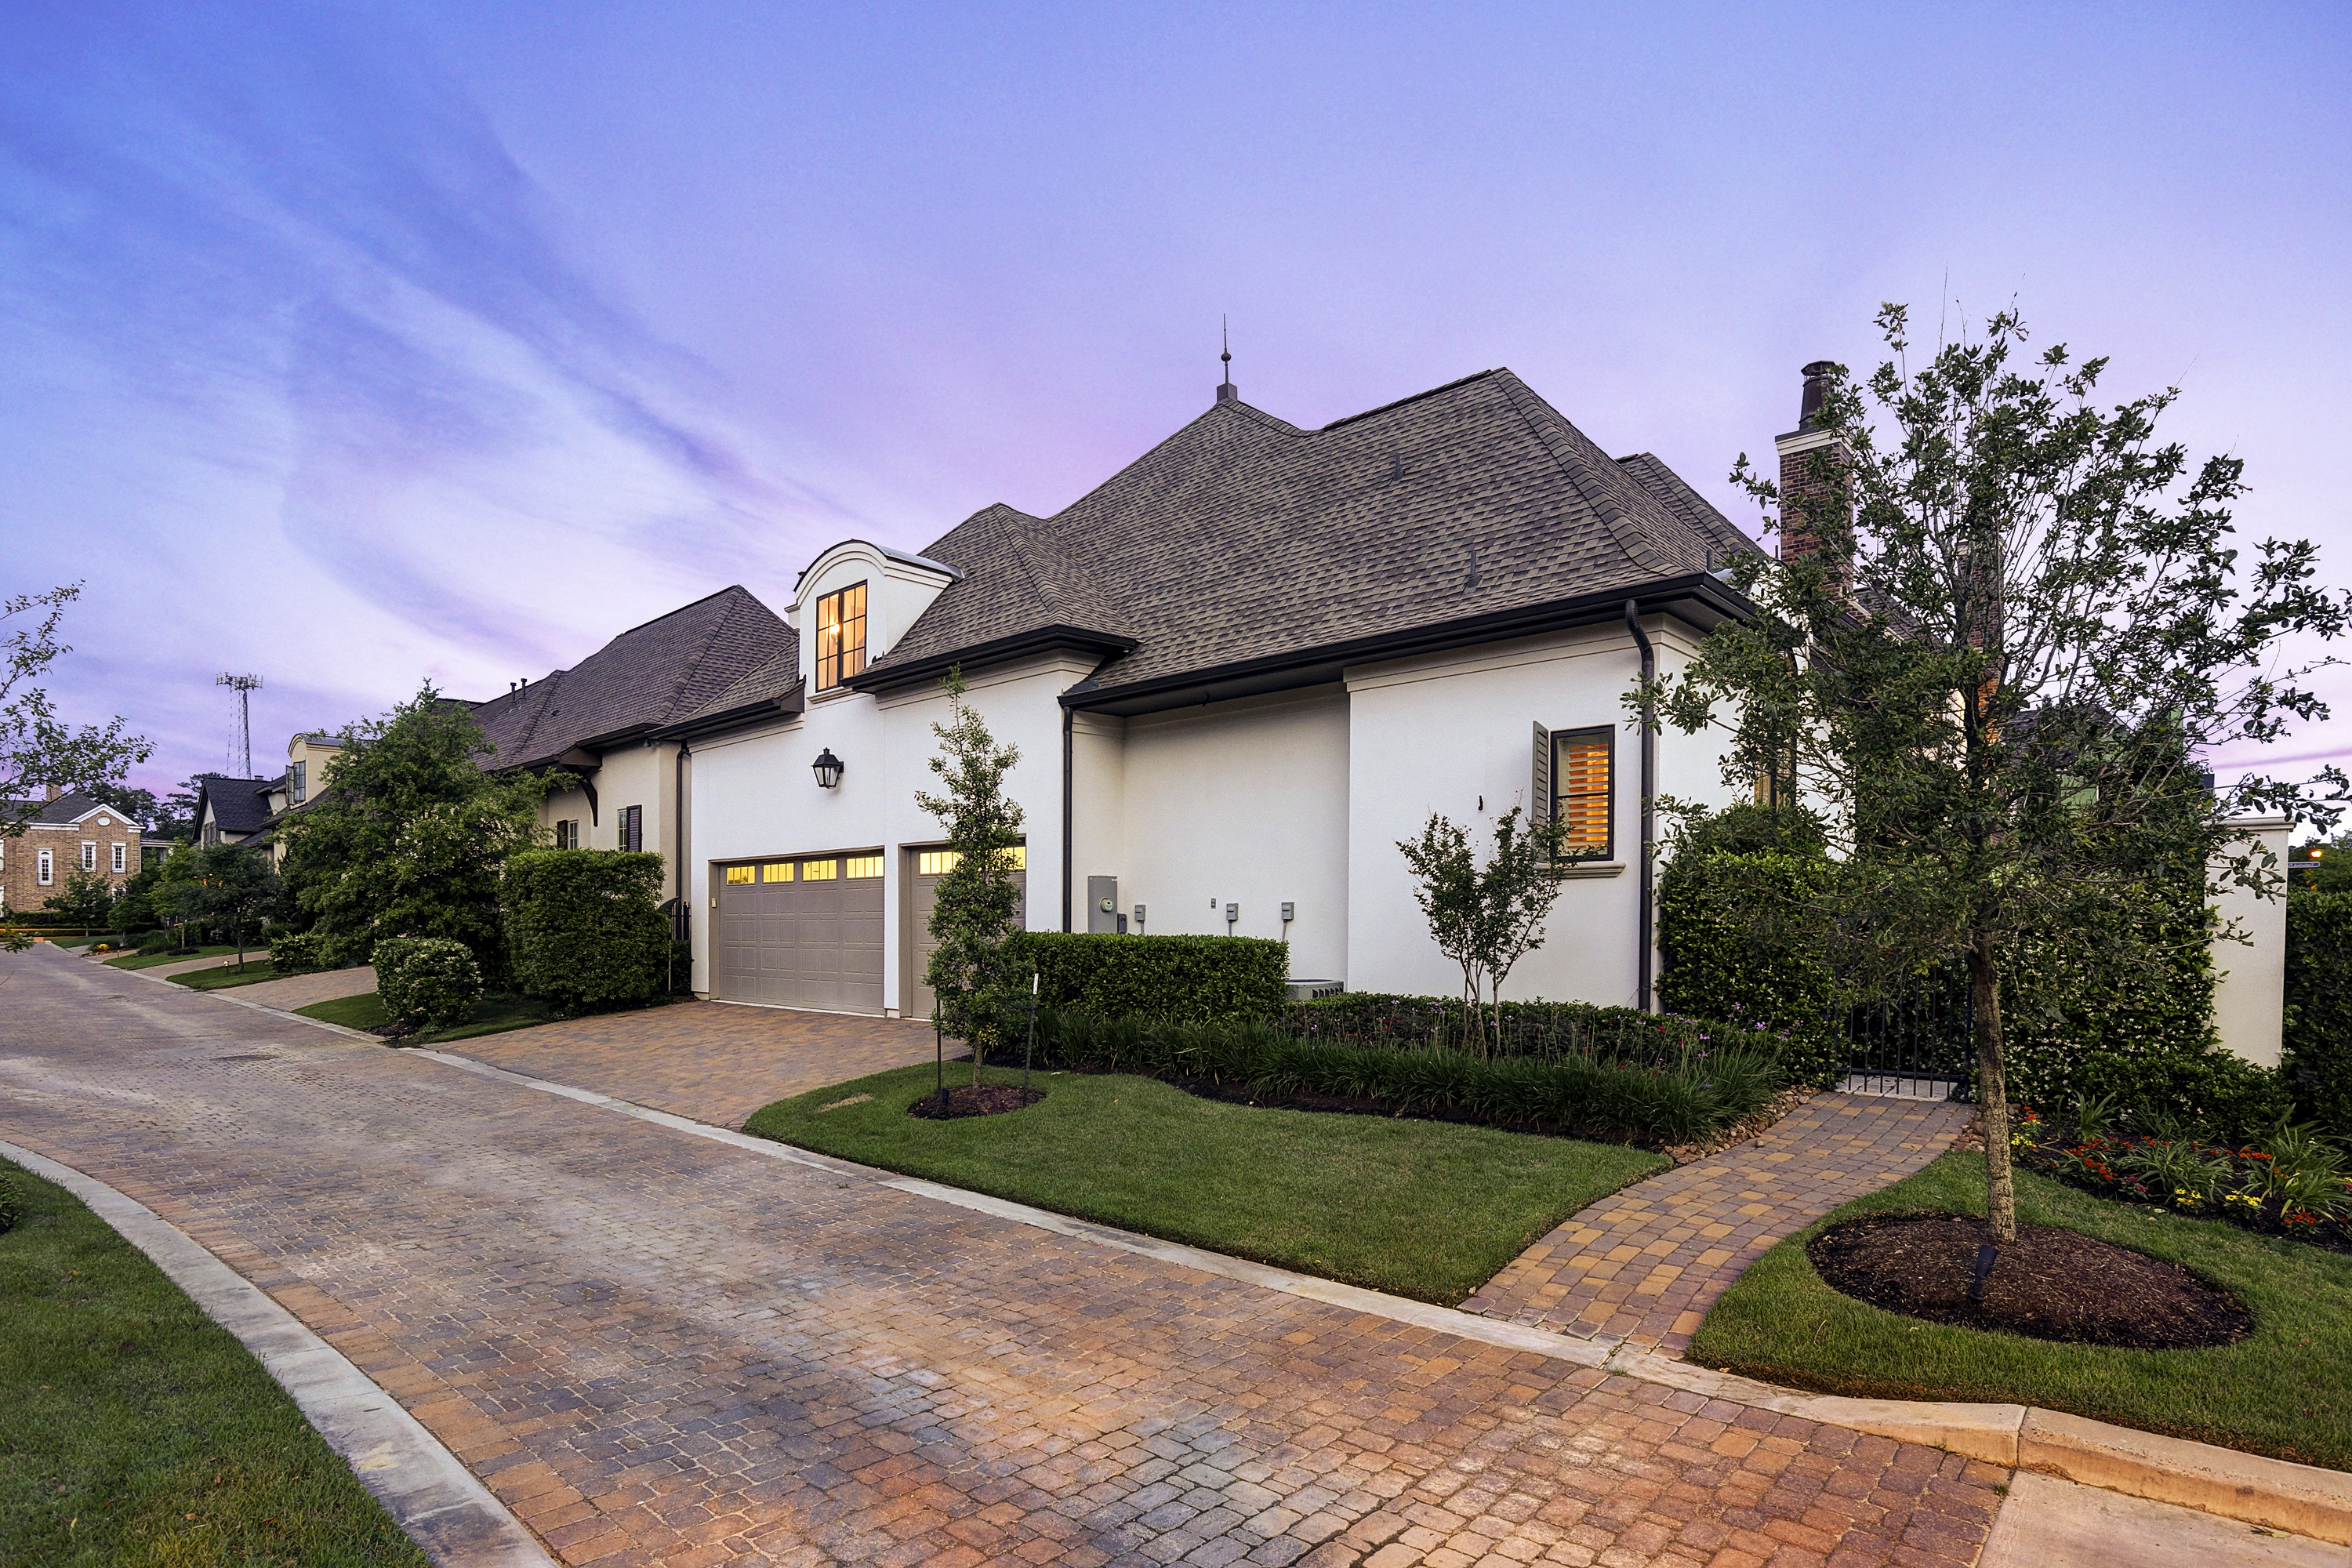 Brick Driveway And Neutral Garage Doors (Image 1 of 38)